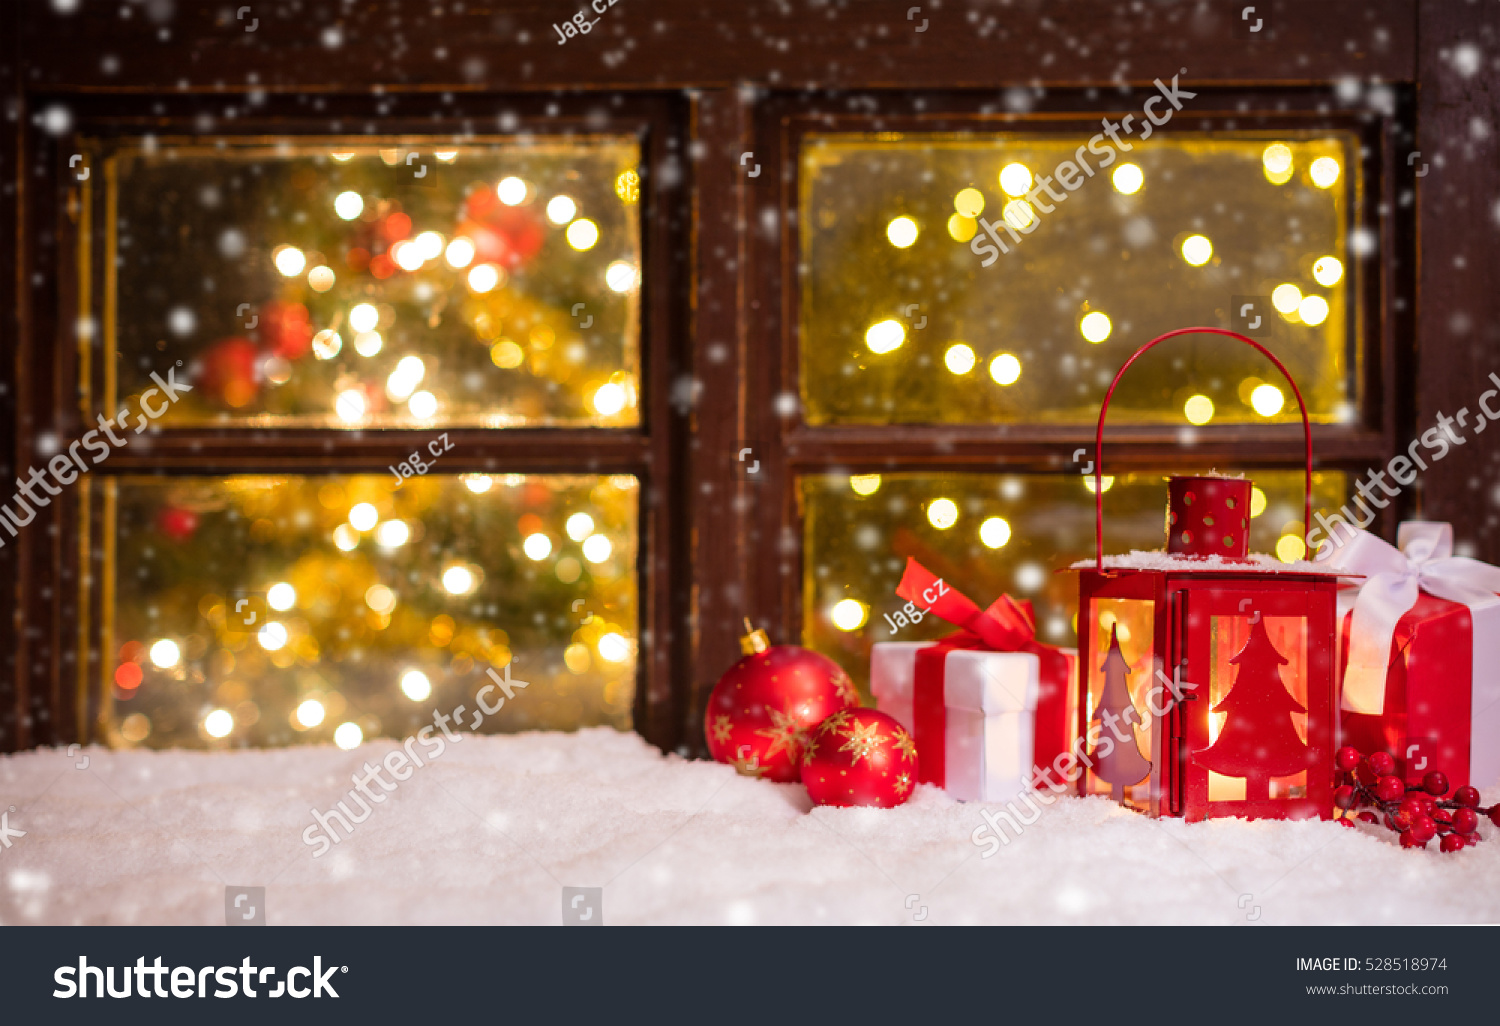 atmospheric christmas window sill with decoration and blur tree wth lights inside